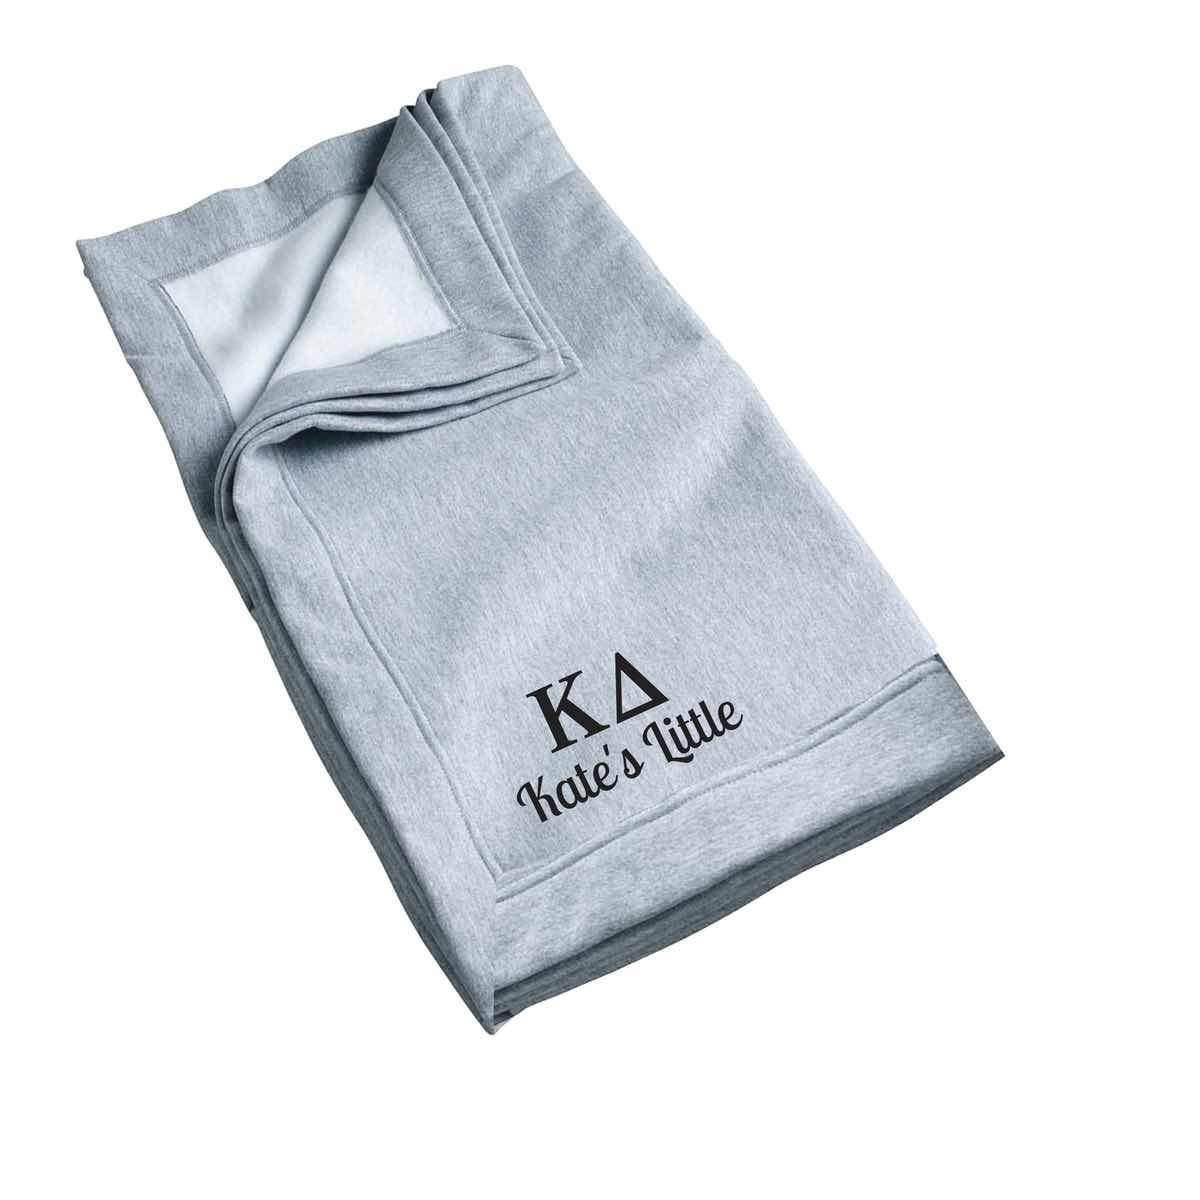 Kappa Delta Little Blanket, Recommended One Size Fits All Personalized Big Little Gift